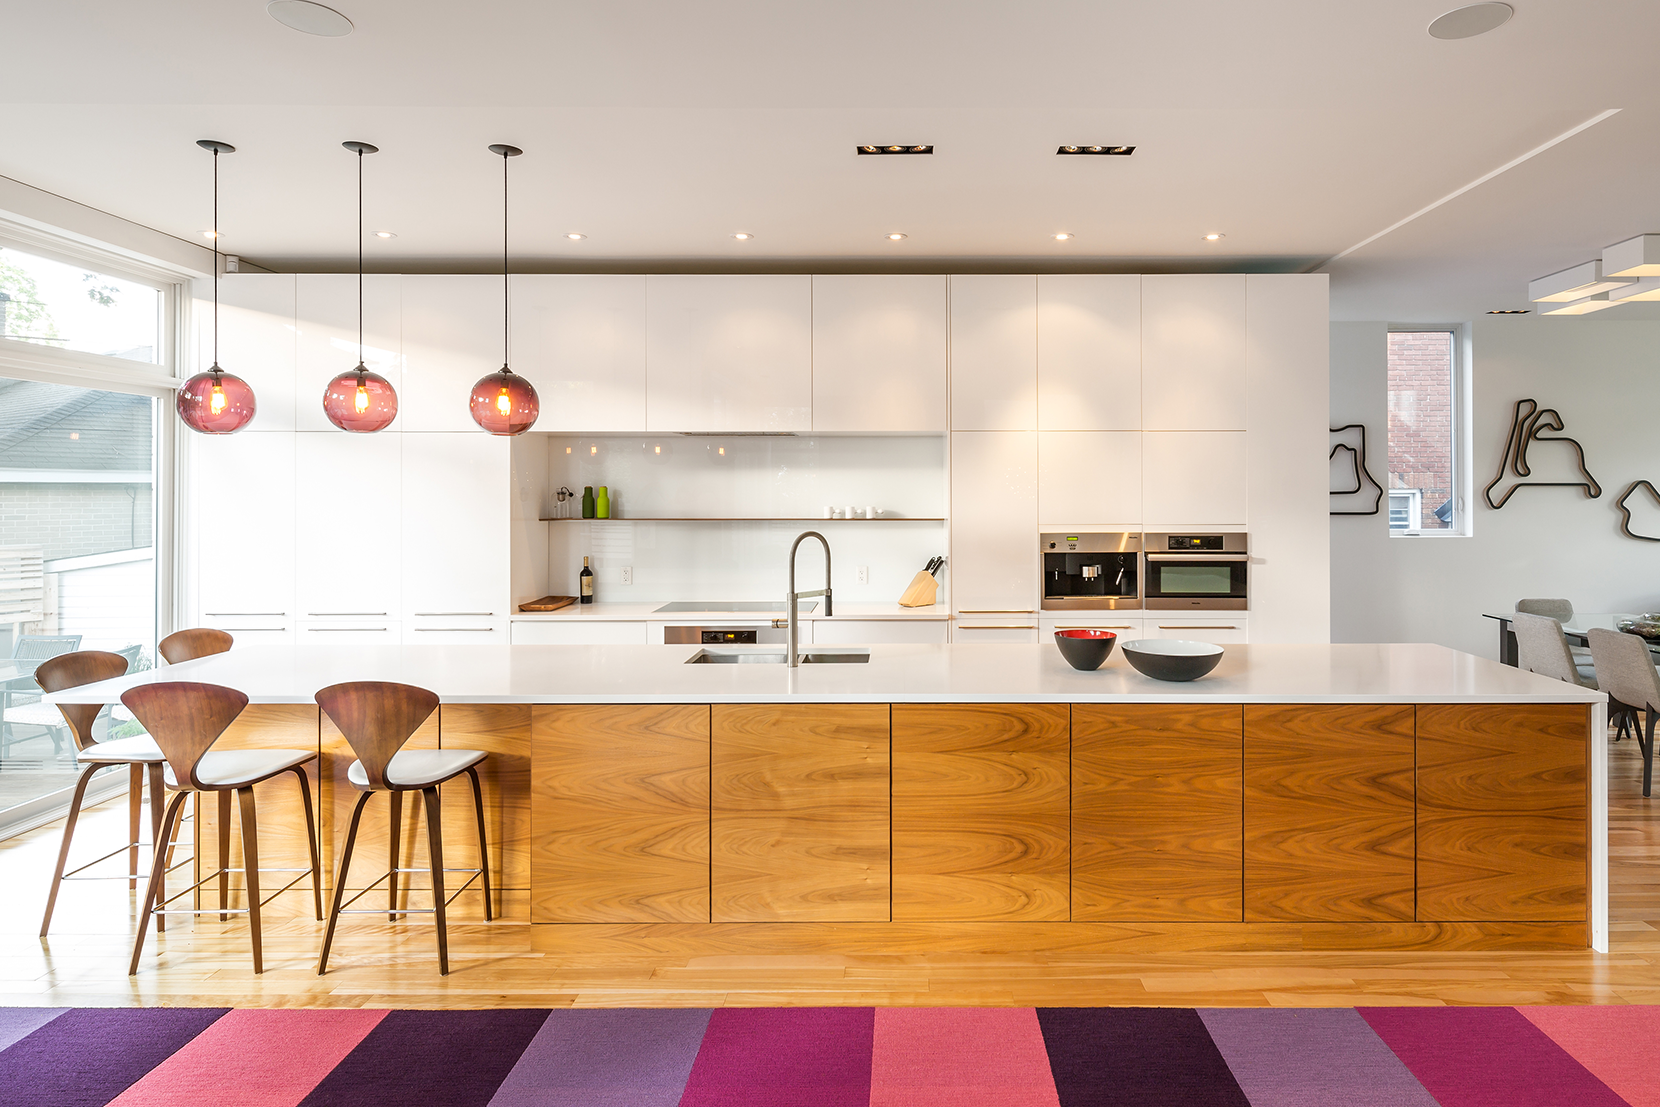 Lighting-Project-Pages_0007s_0005_Kitchen-Modern-Pendand-Lighting-Plum.png